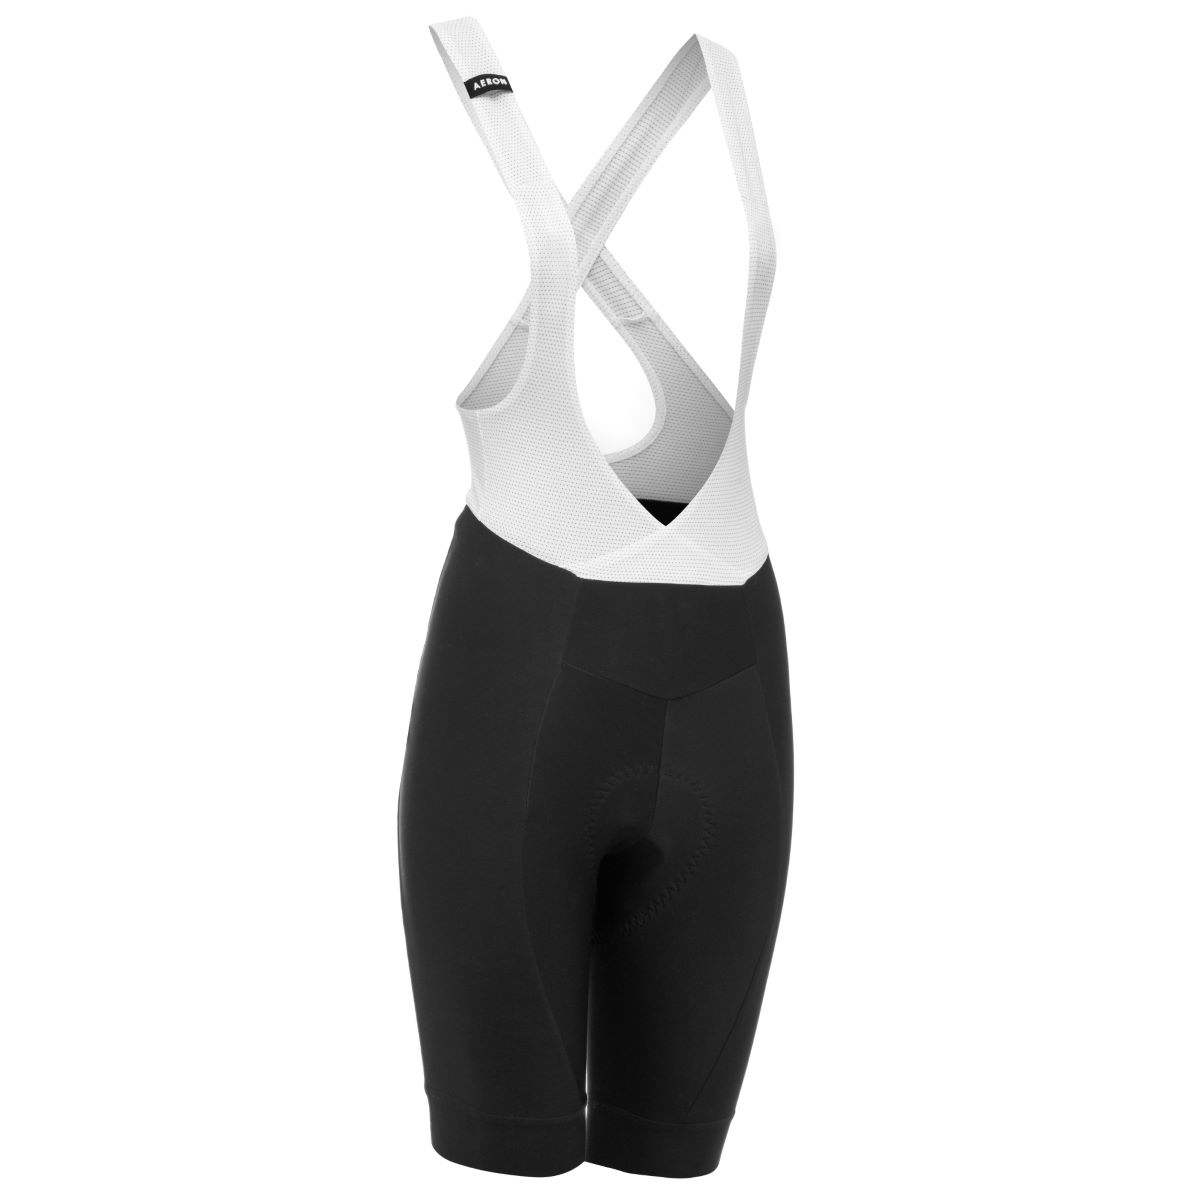 dhb Aeron Women's Equinox Bib Short - UK 14 Black | Bib Shorts